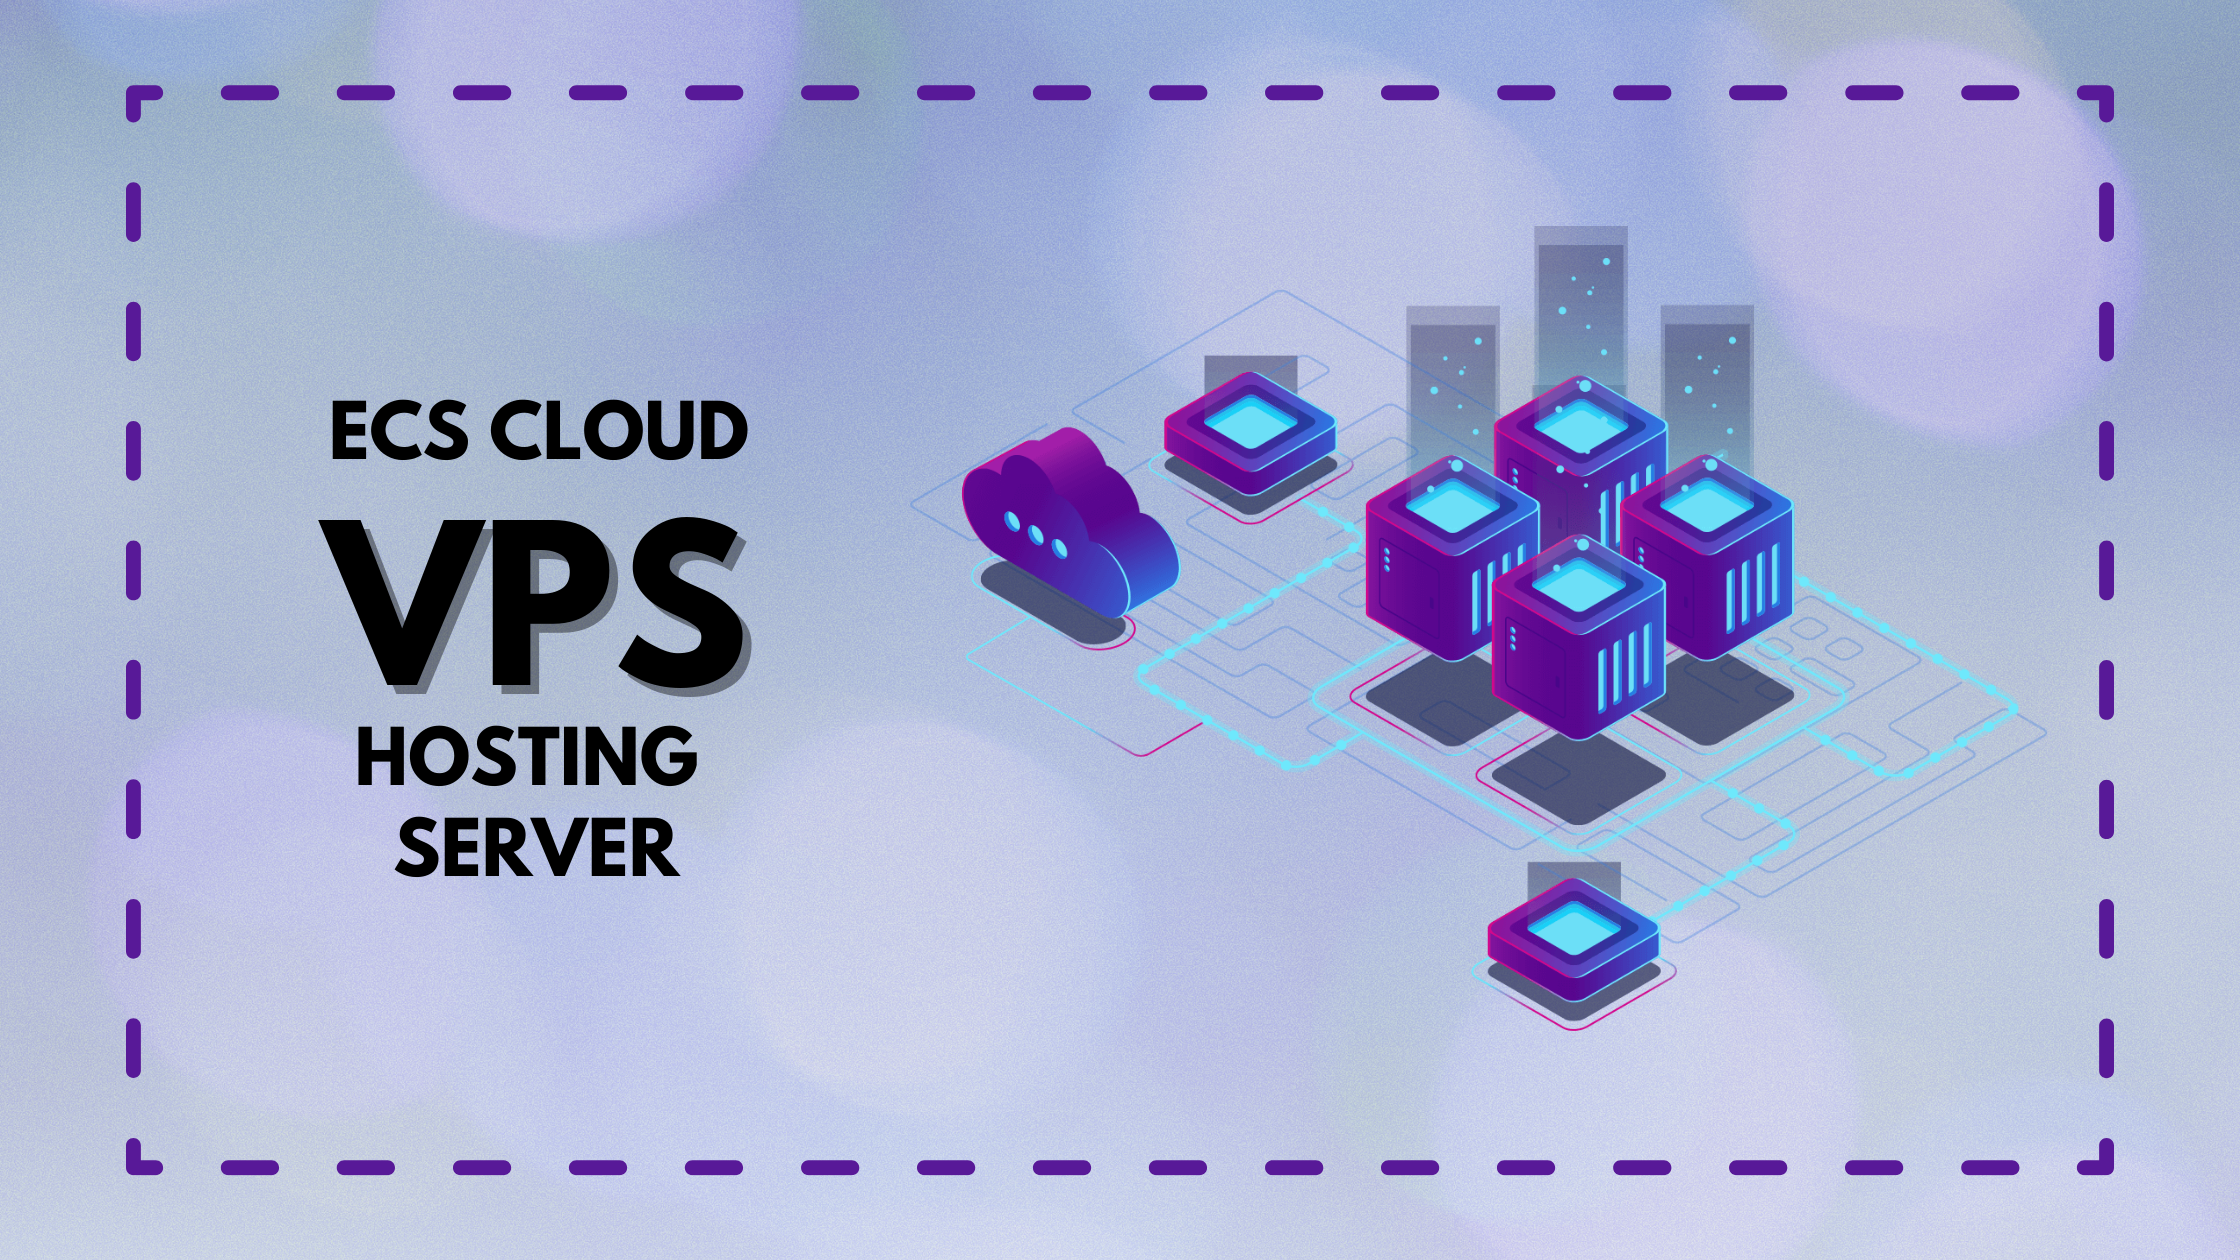 ECS Cloud VPS Hosting Service levelled up the flexibility & performance of the server of the Well-known Healthcare Organization